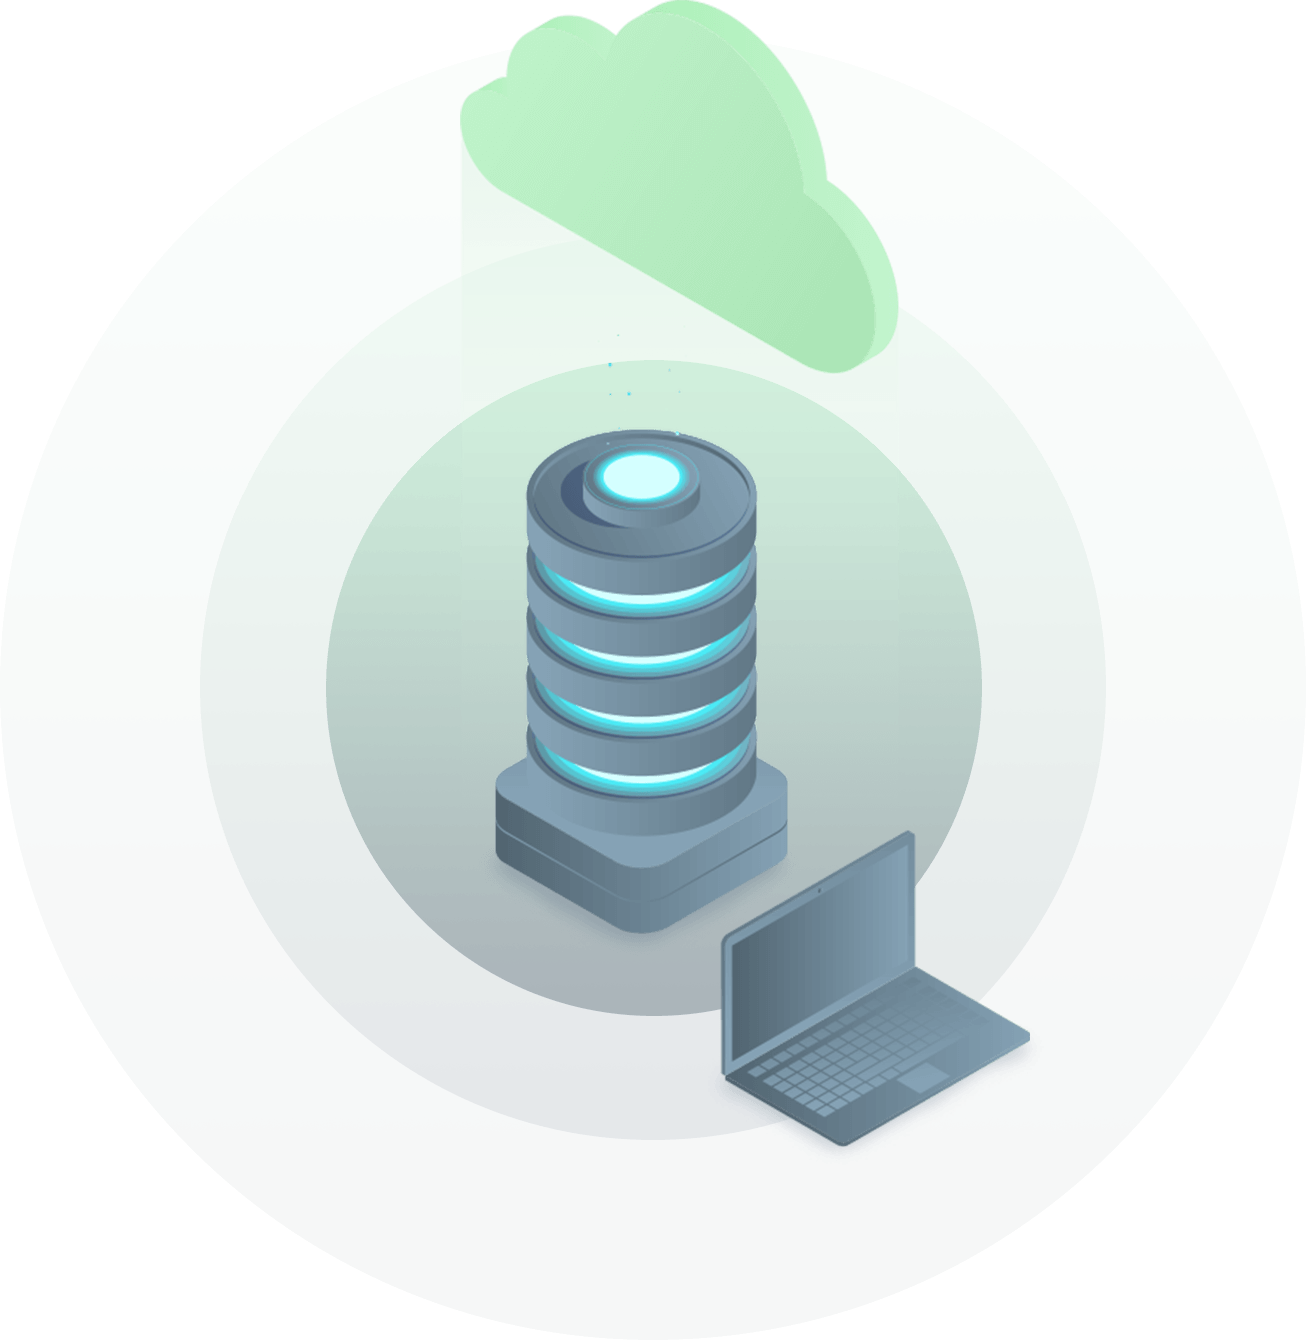 cloud server with laptop illustration